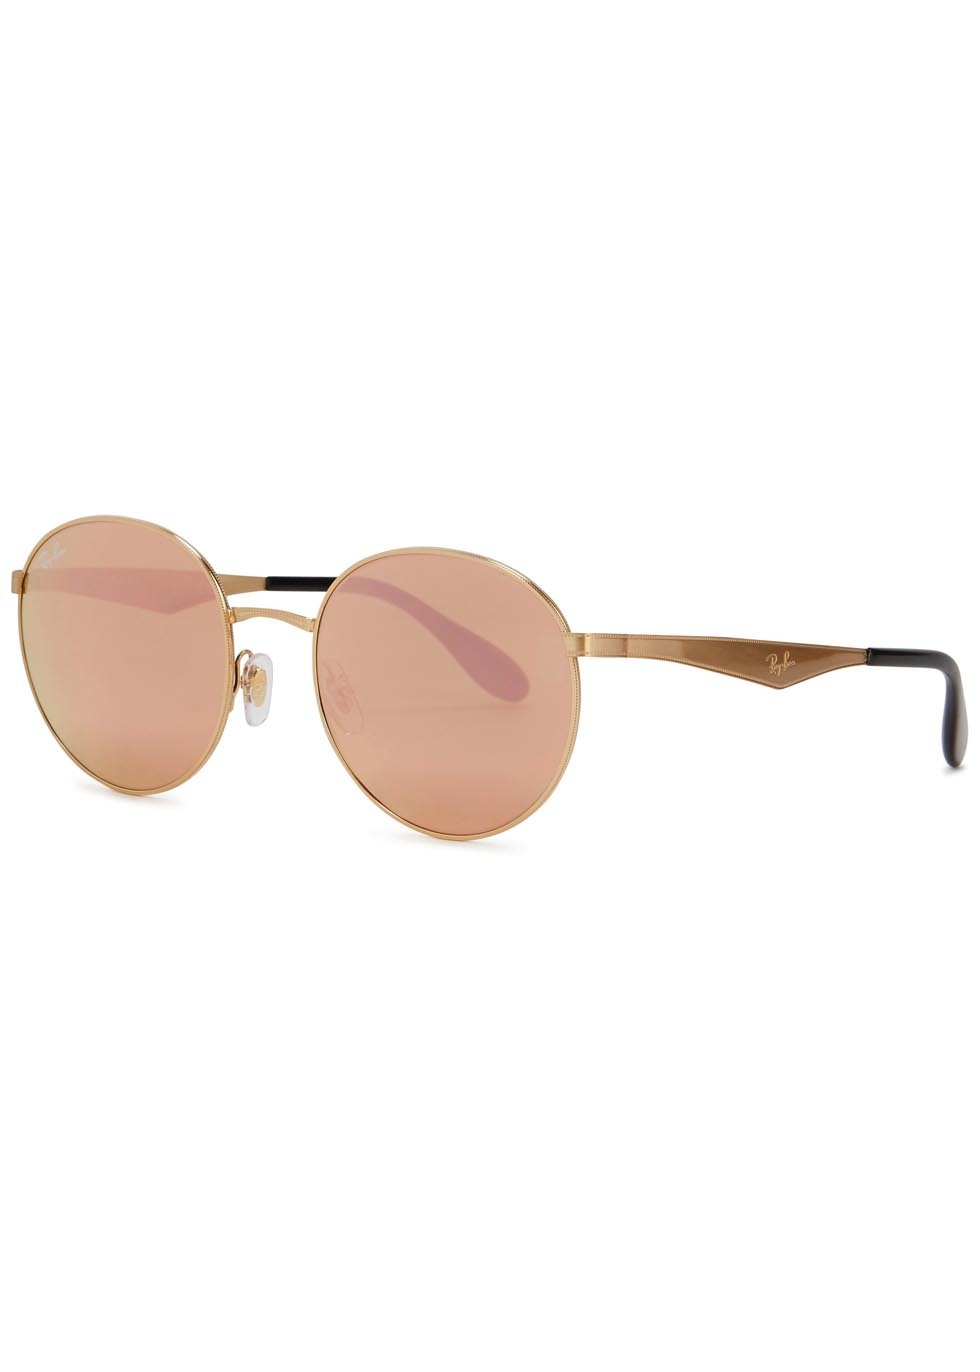 Mirrored Round Frame Sunglasses - predominant colour: blush; secondary colour: gold; occasions: casual, holiday; style: round; size: standard; material: chain/metal; pattern: plain; finish: metallic; season: s/s 2016; wardrobe: basic